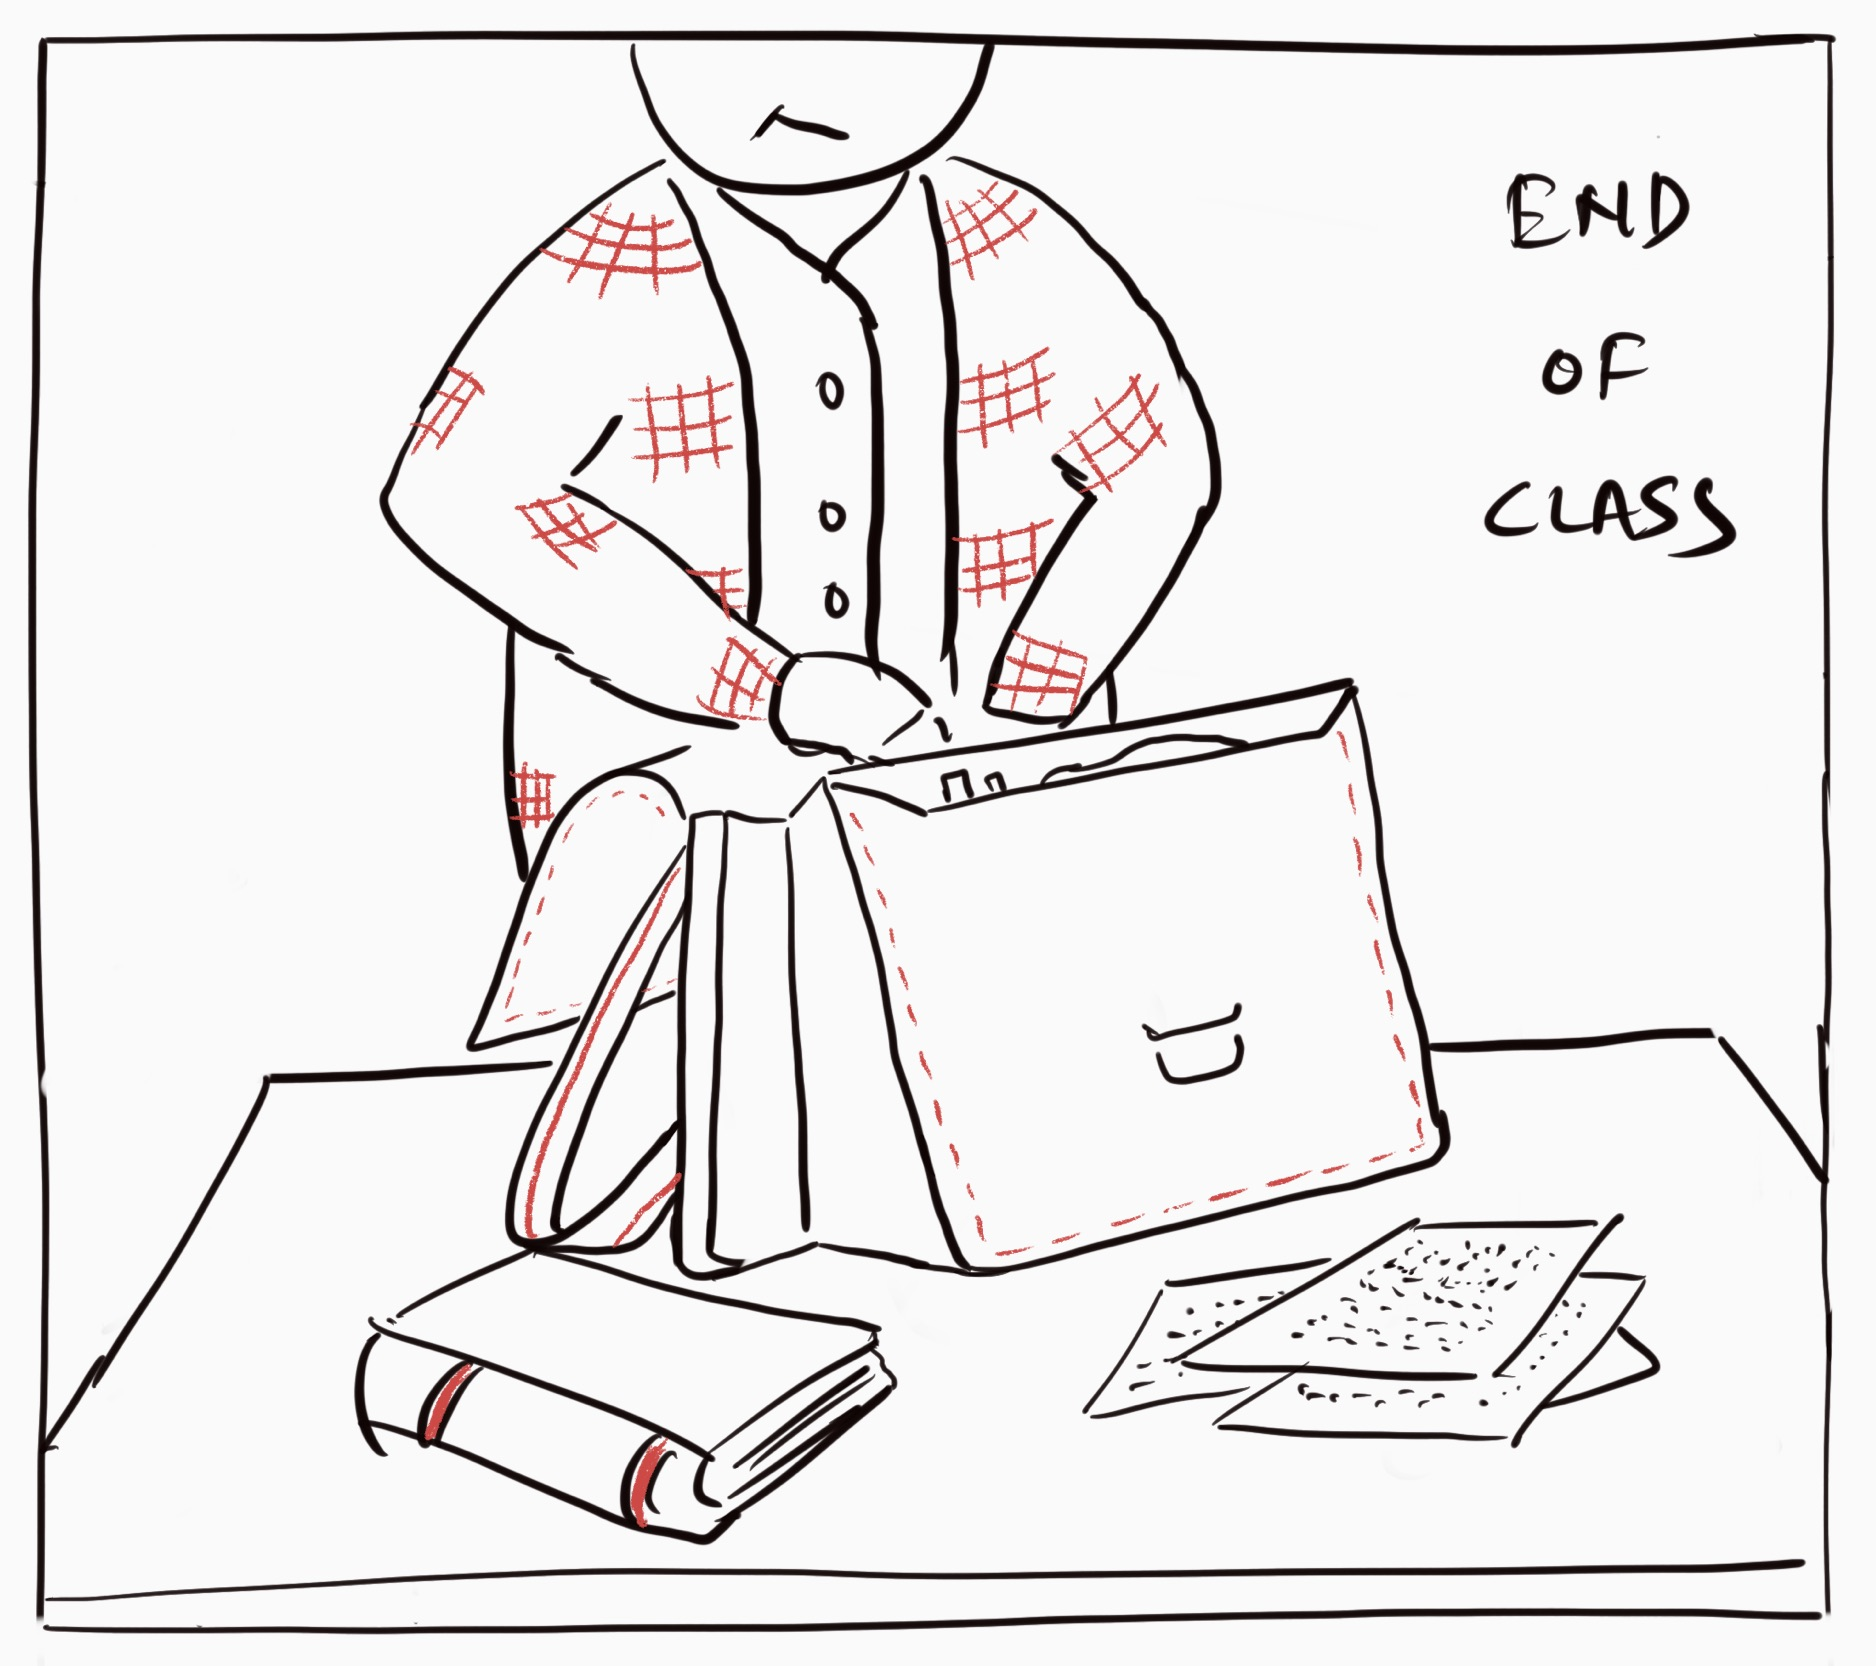 In this image Alan is hurriedly packing his stuff to switch classrooms.